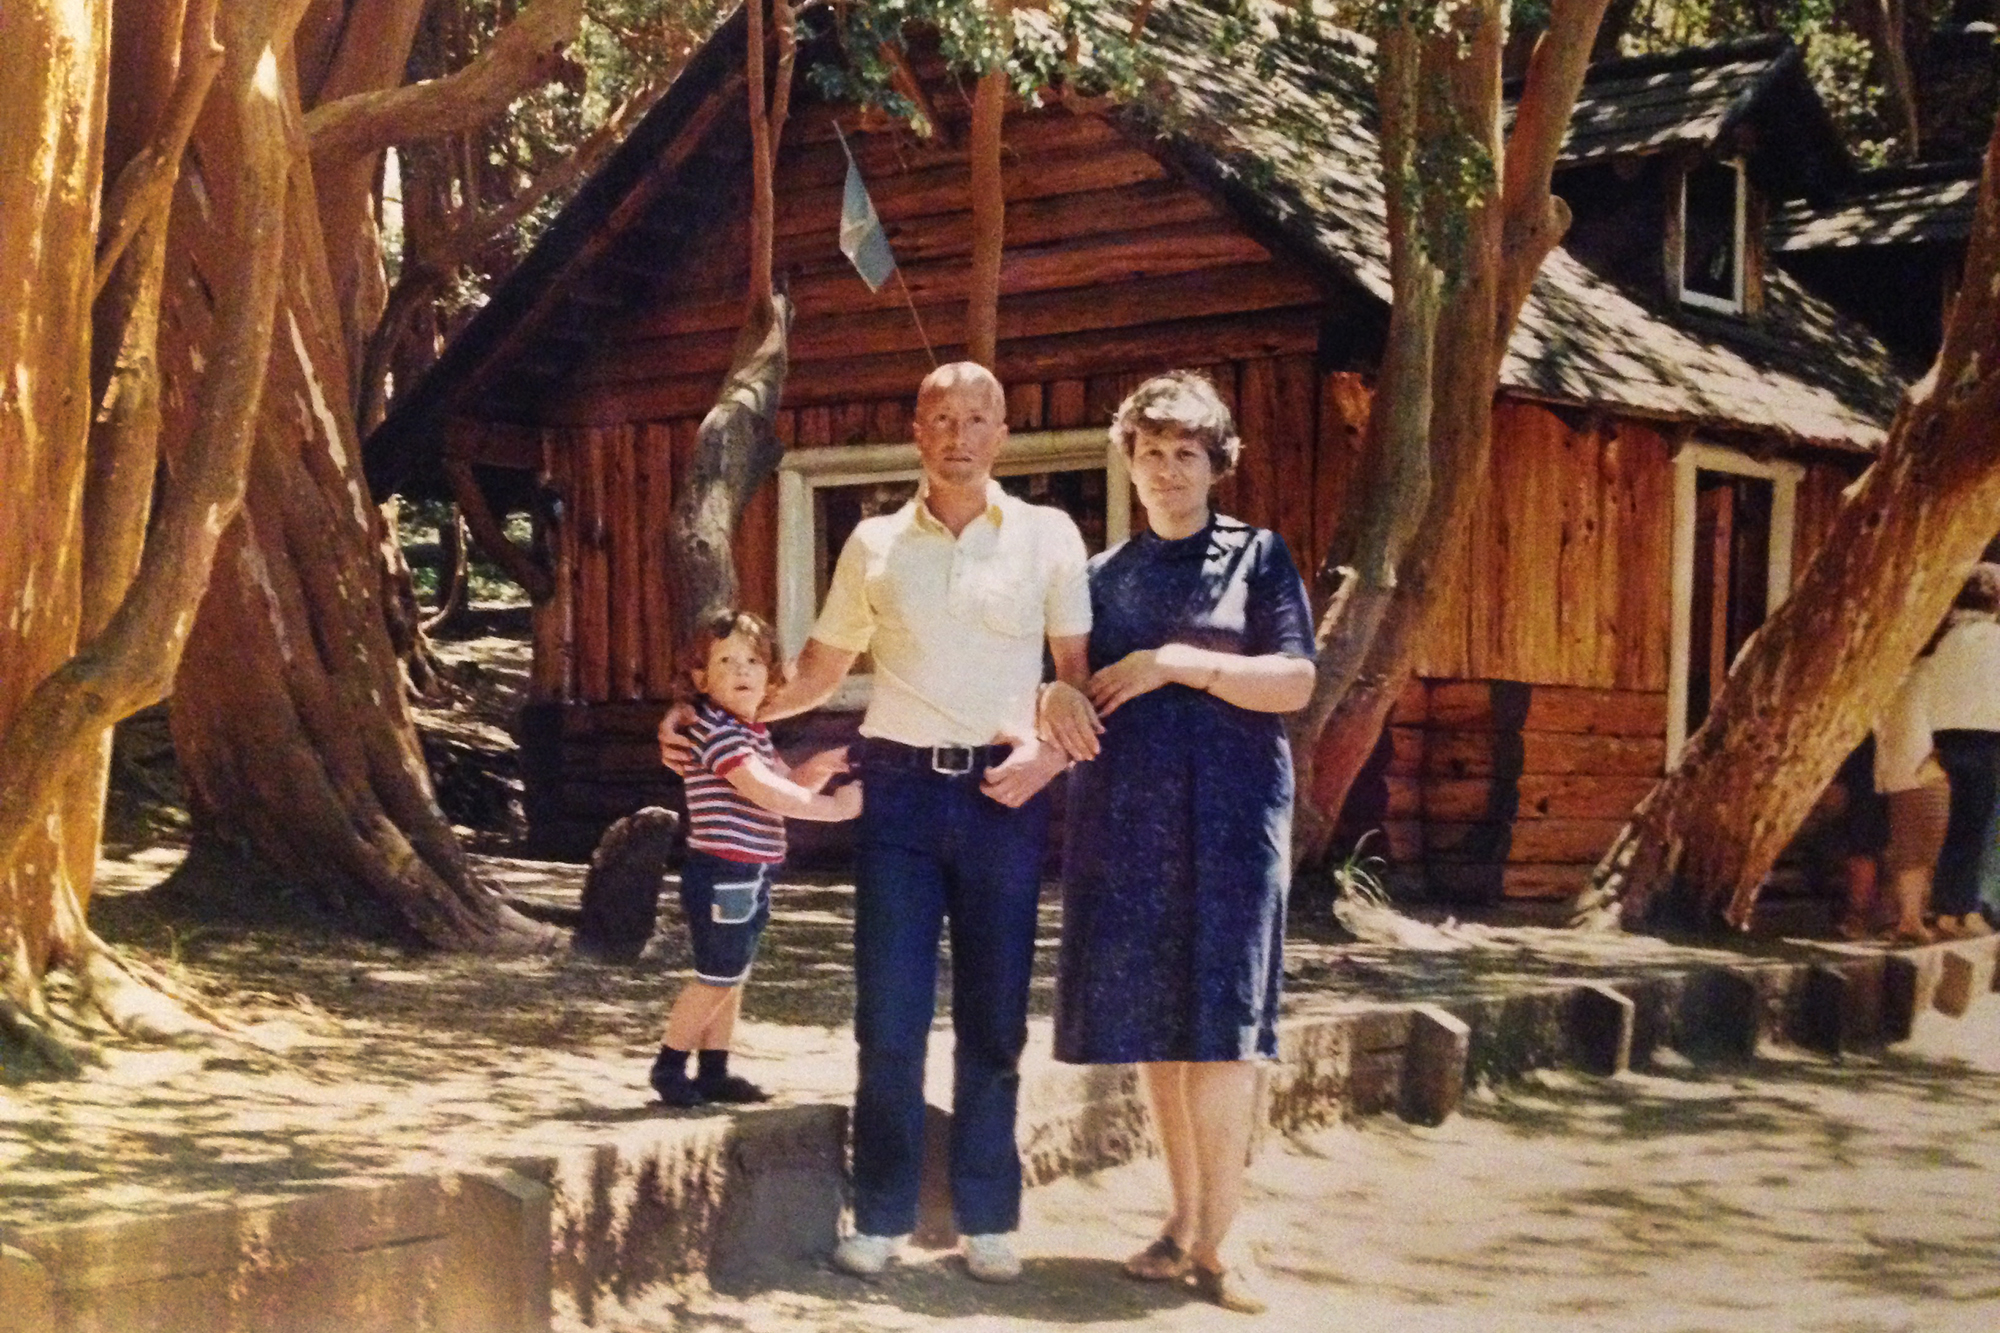 Assistant Teaching Professor of Spanish M. Celeste Gonzalez Chaves in 1991 with her parents in Argentina